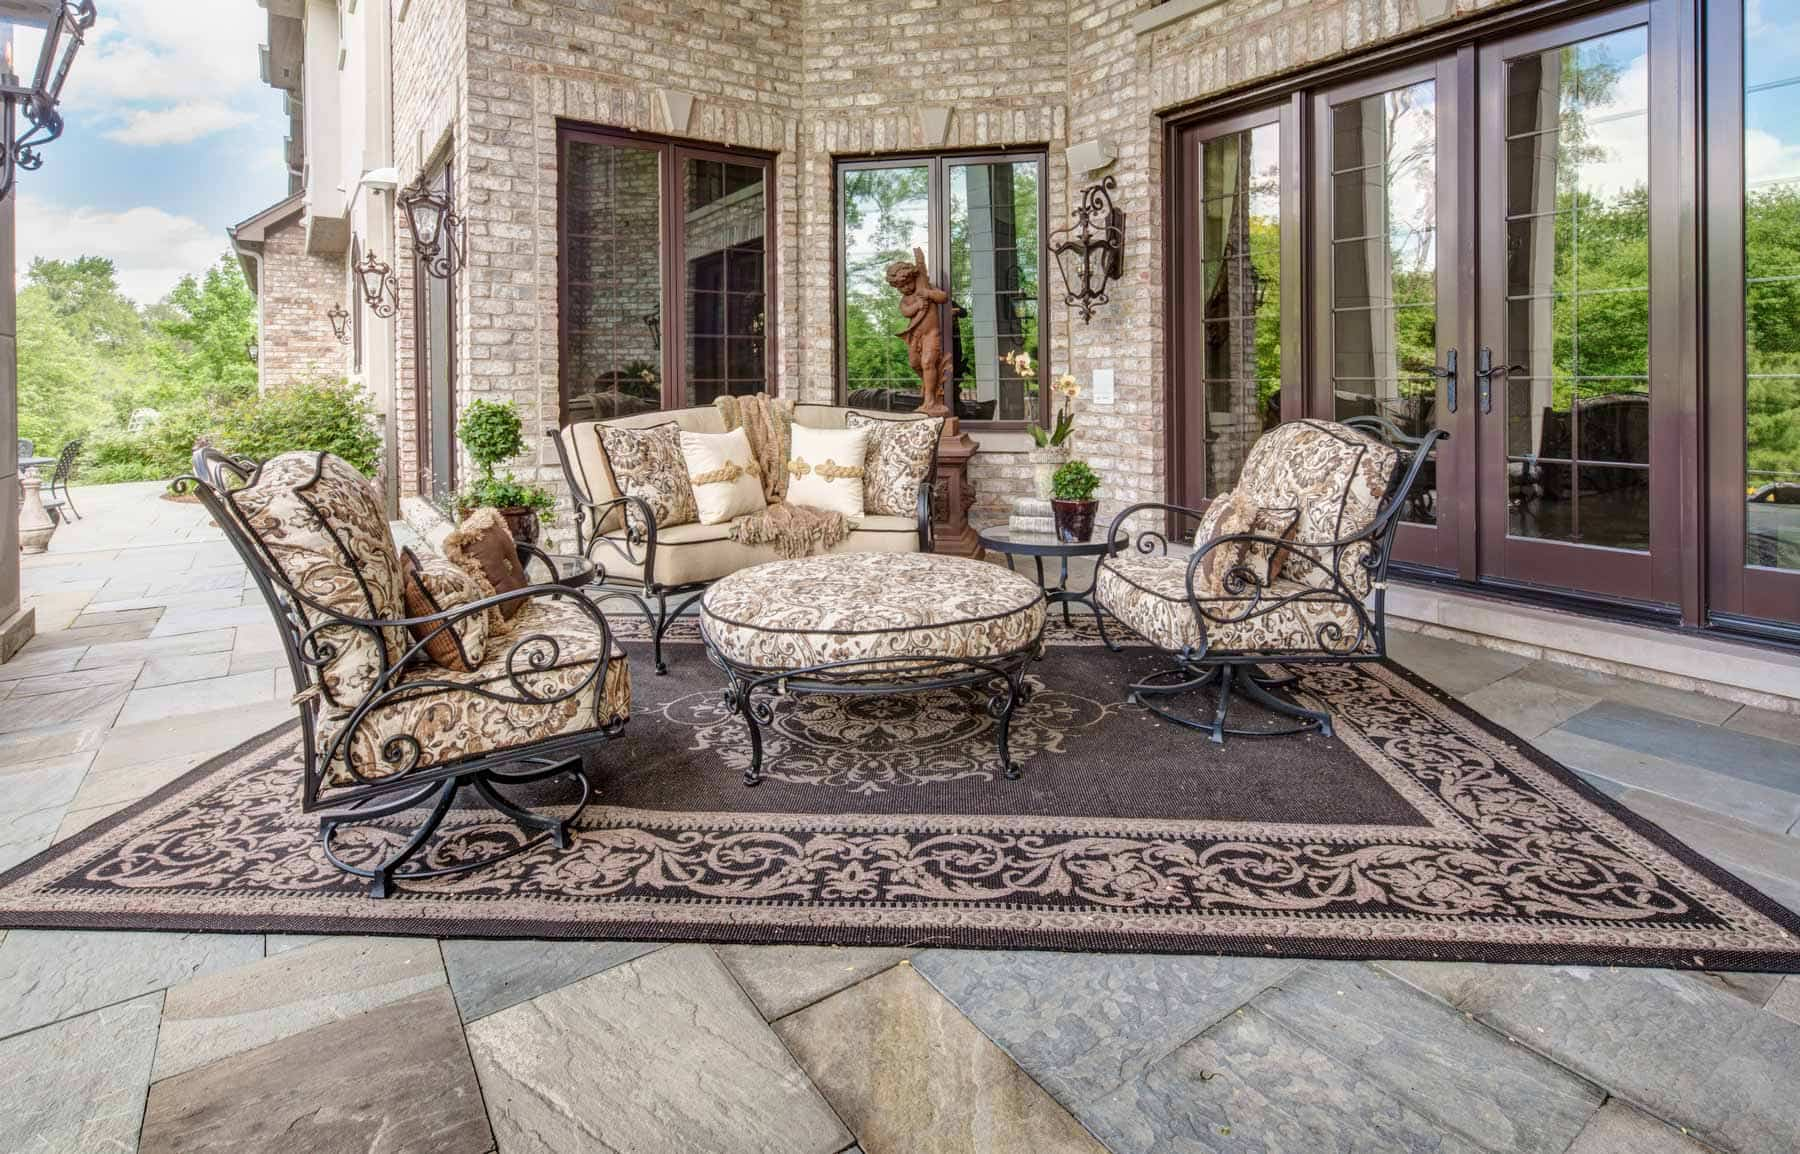 Luxury outdoor patio furniture and rug Most expensive outdoor furniture